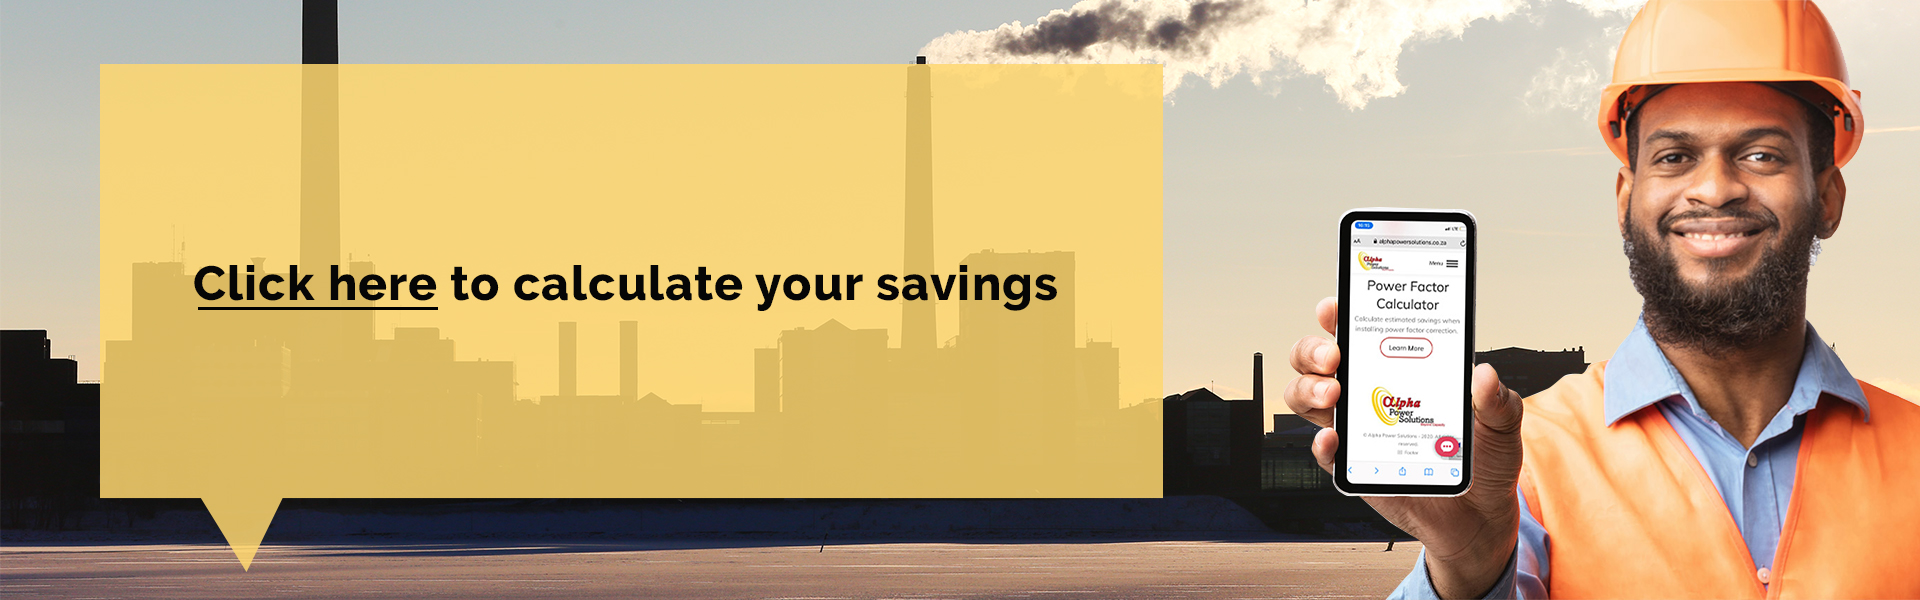 Calculate your savings here